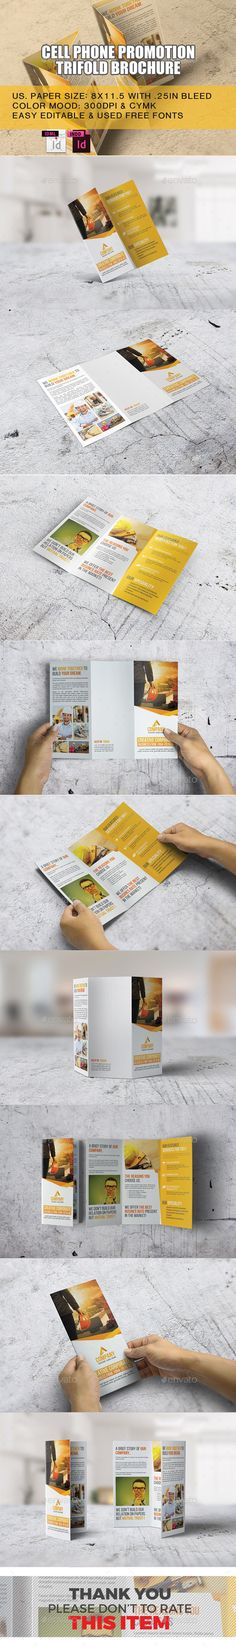 1000+ images about Gym Brochure on Pinterest Gym, Templates and - gym brochure